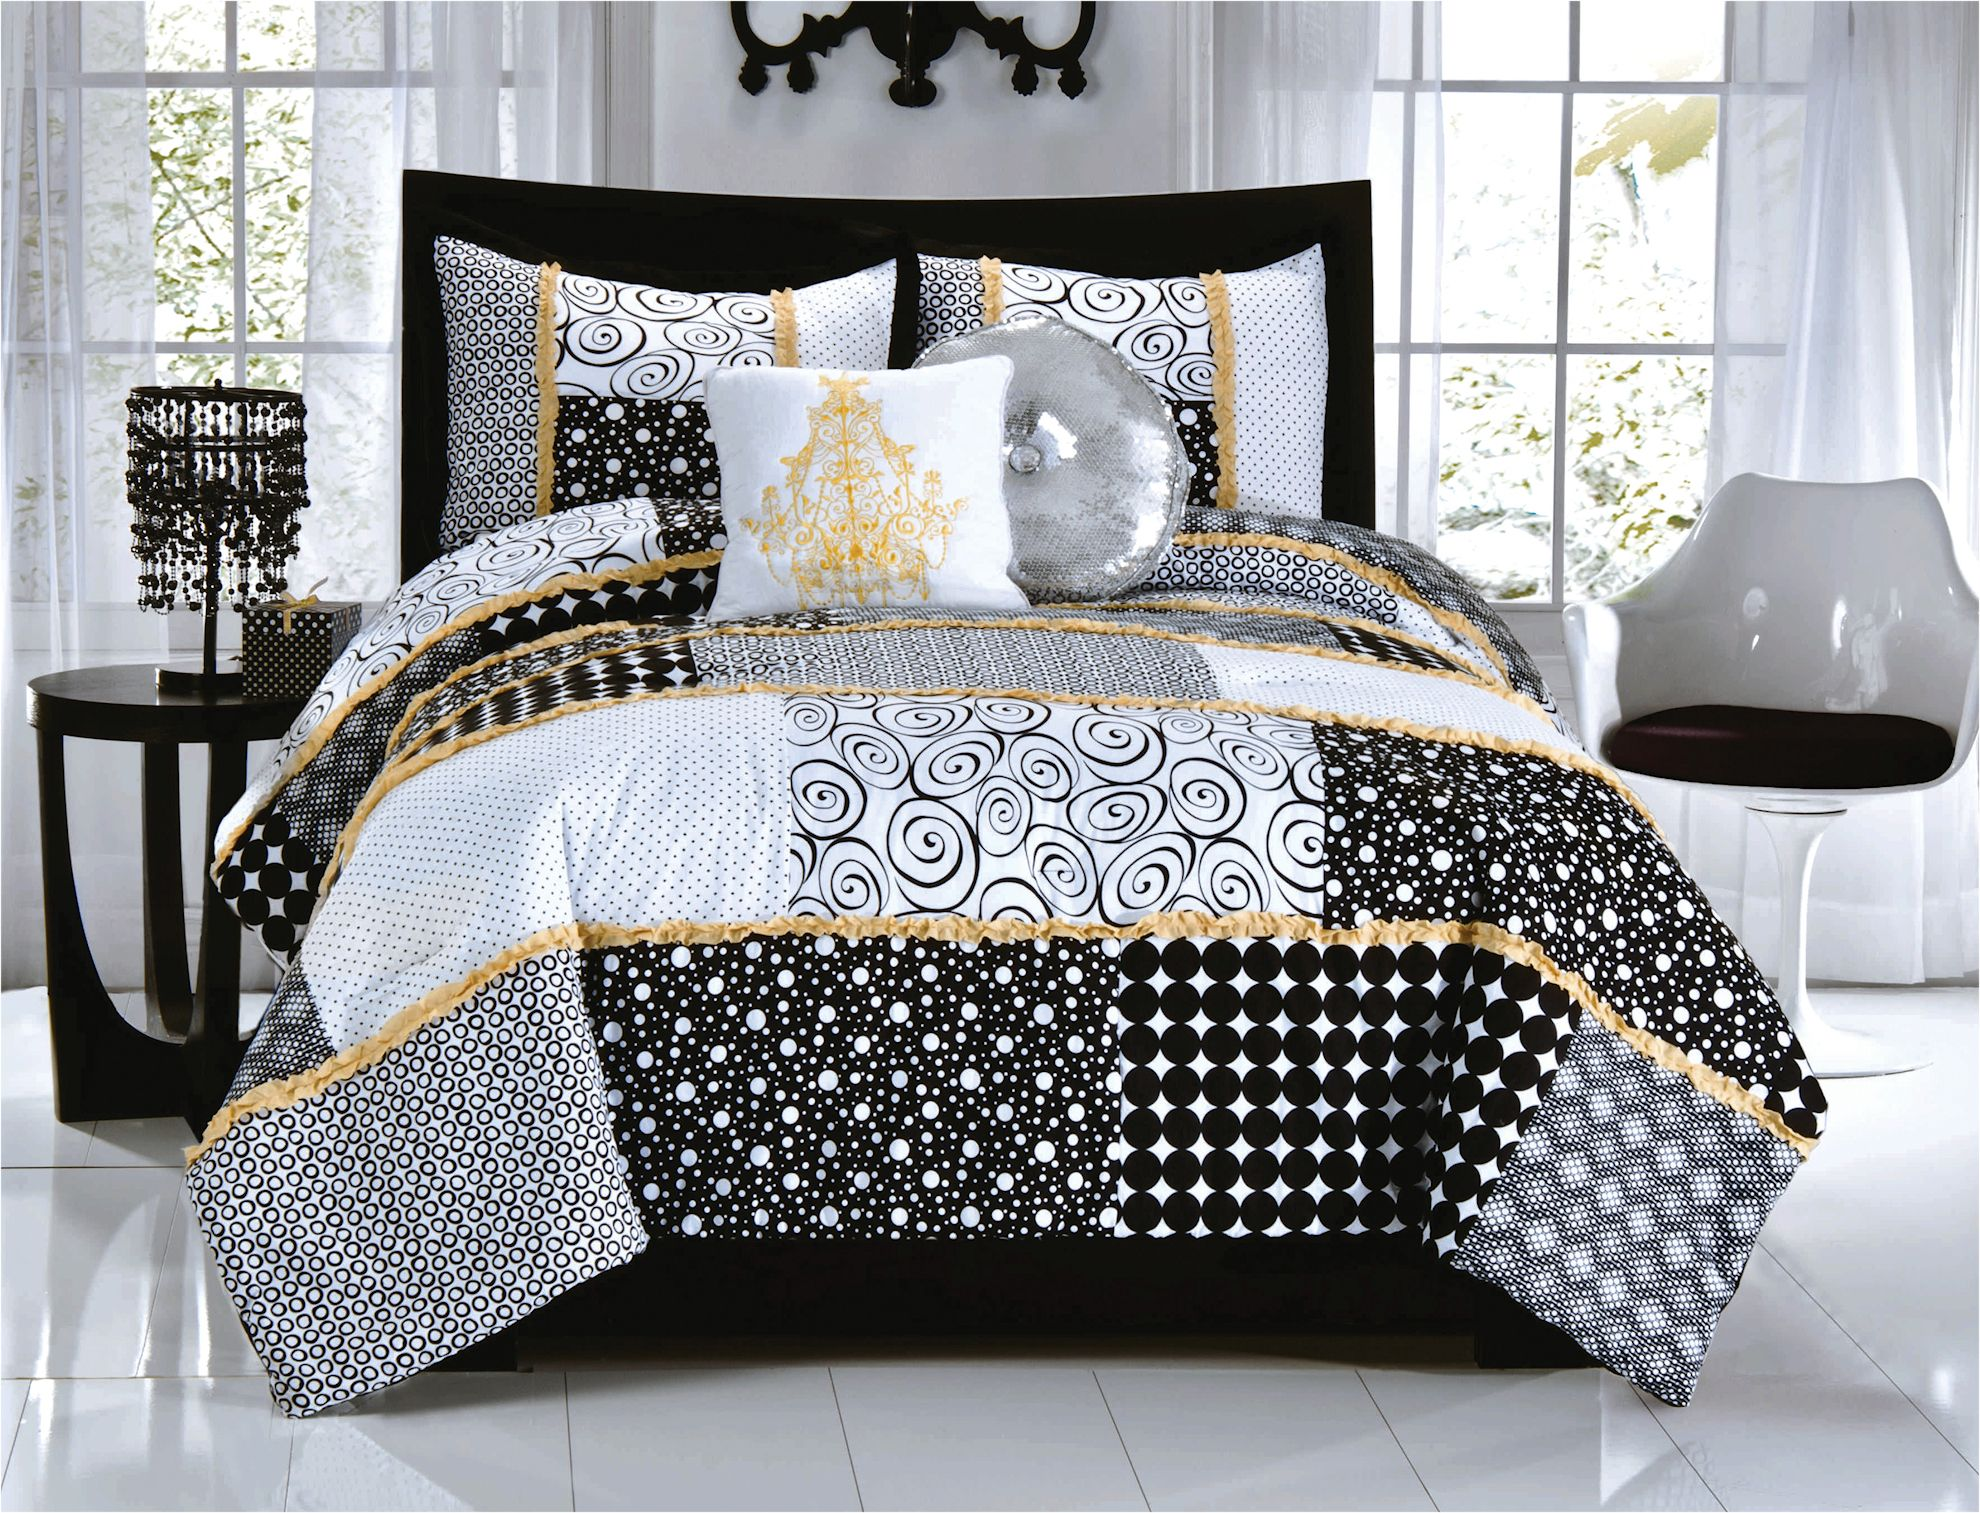 Black And Yellow Comforter Queen: Elegant Black White Dot & Scroll Teen Girl Bedding Twin